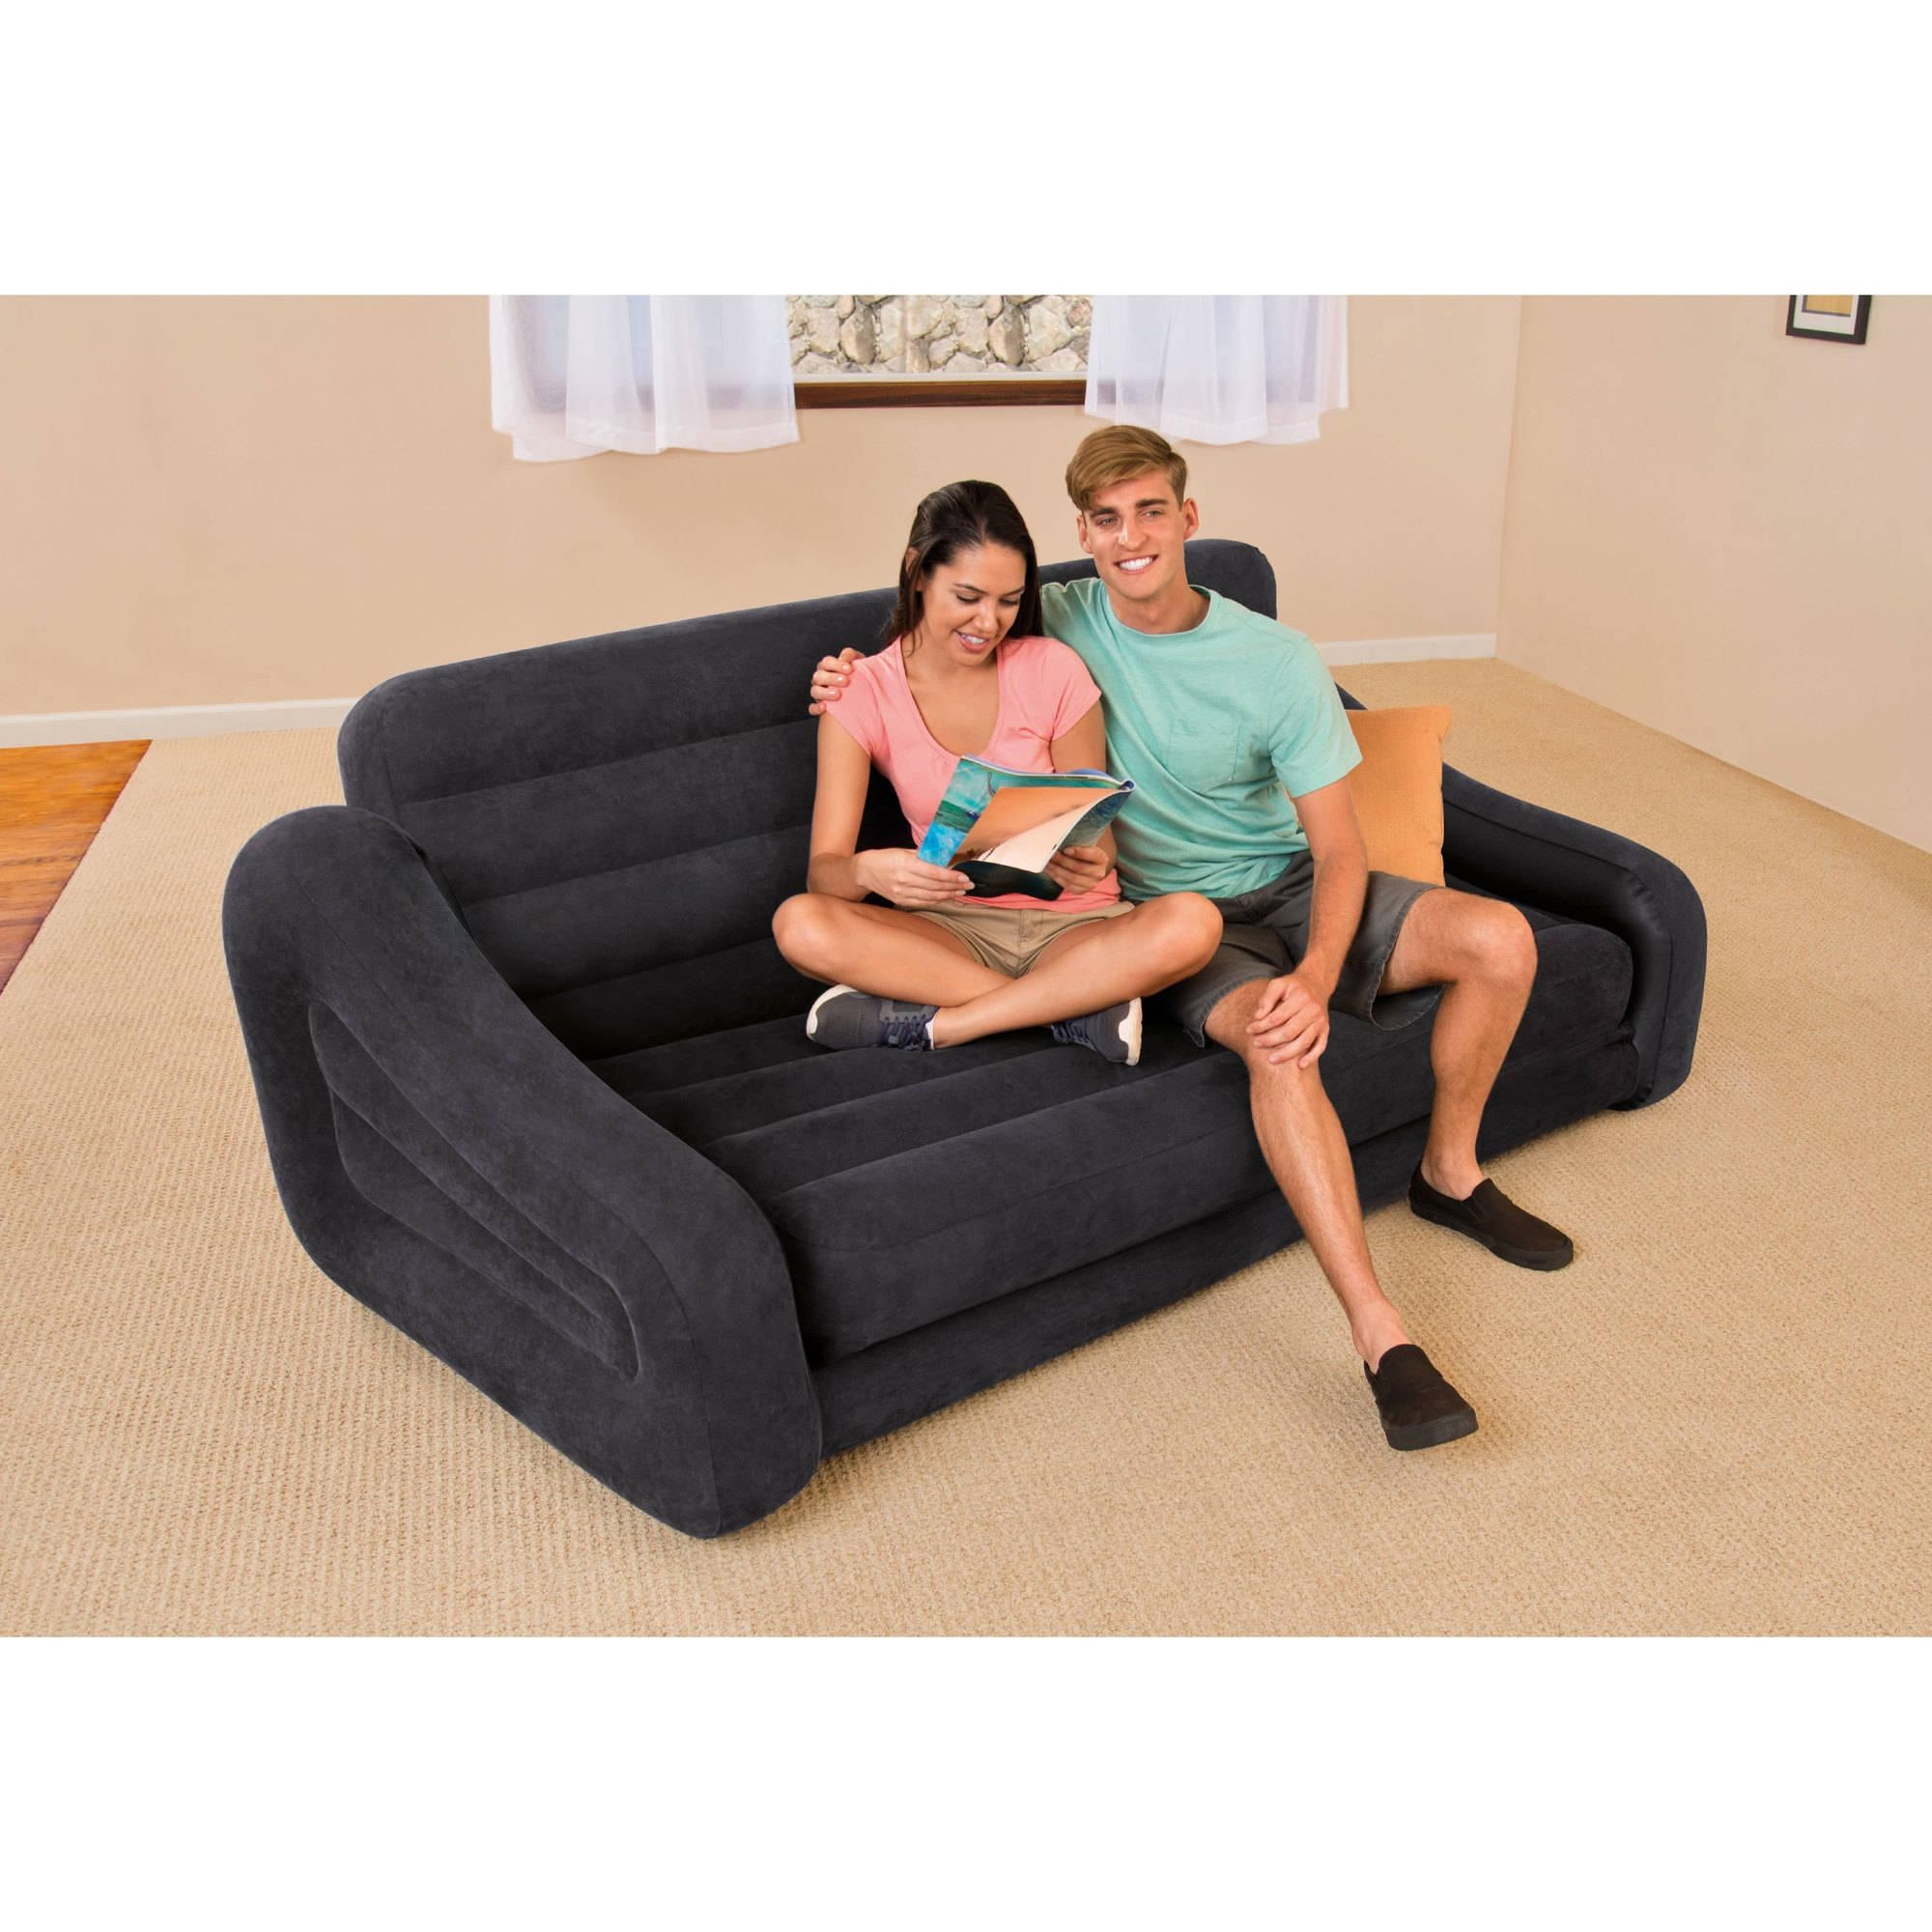 Intex Queen Inflatable Pull Out Sofa Bed – Walmart In Inflatable Sofa Beds Mattress (Image 12 of 20)